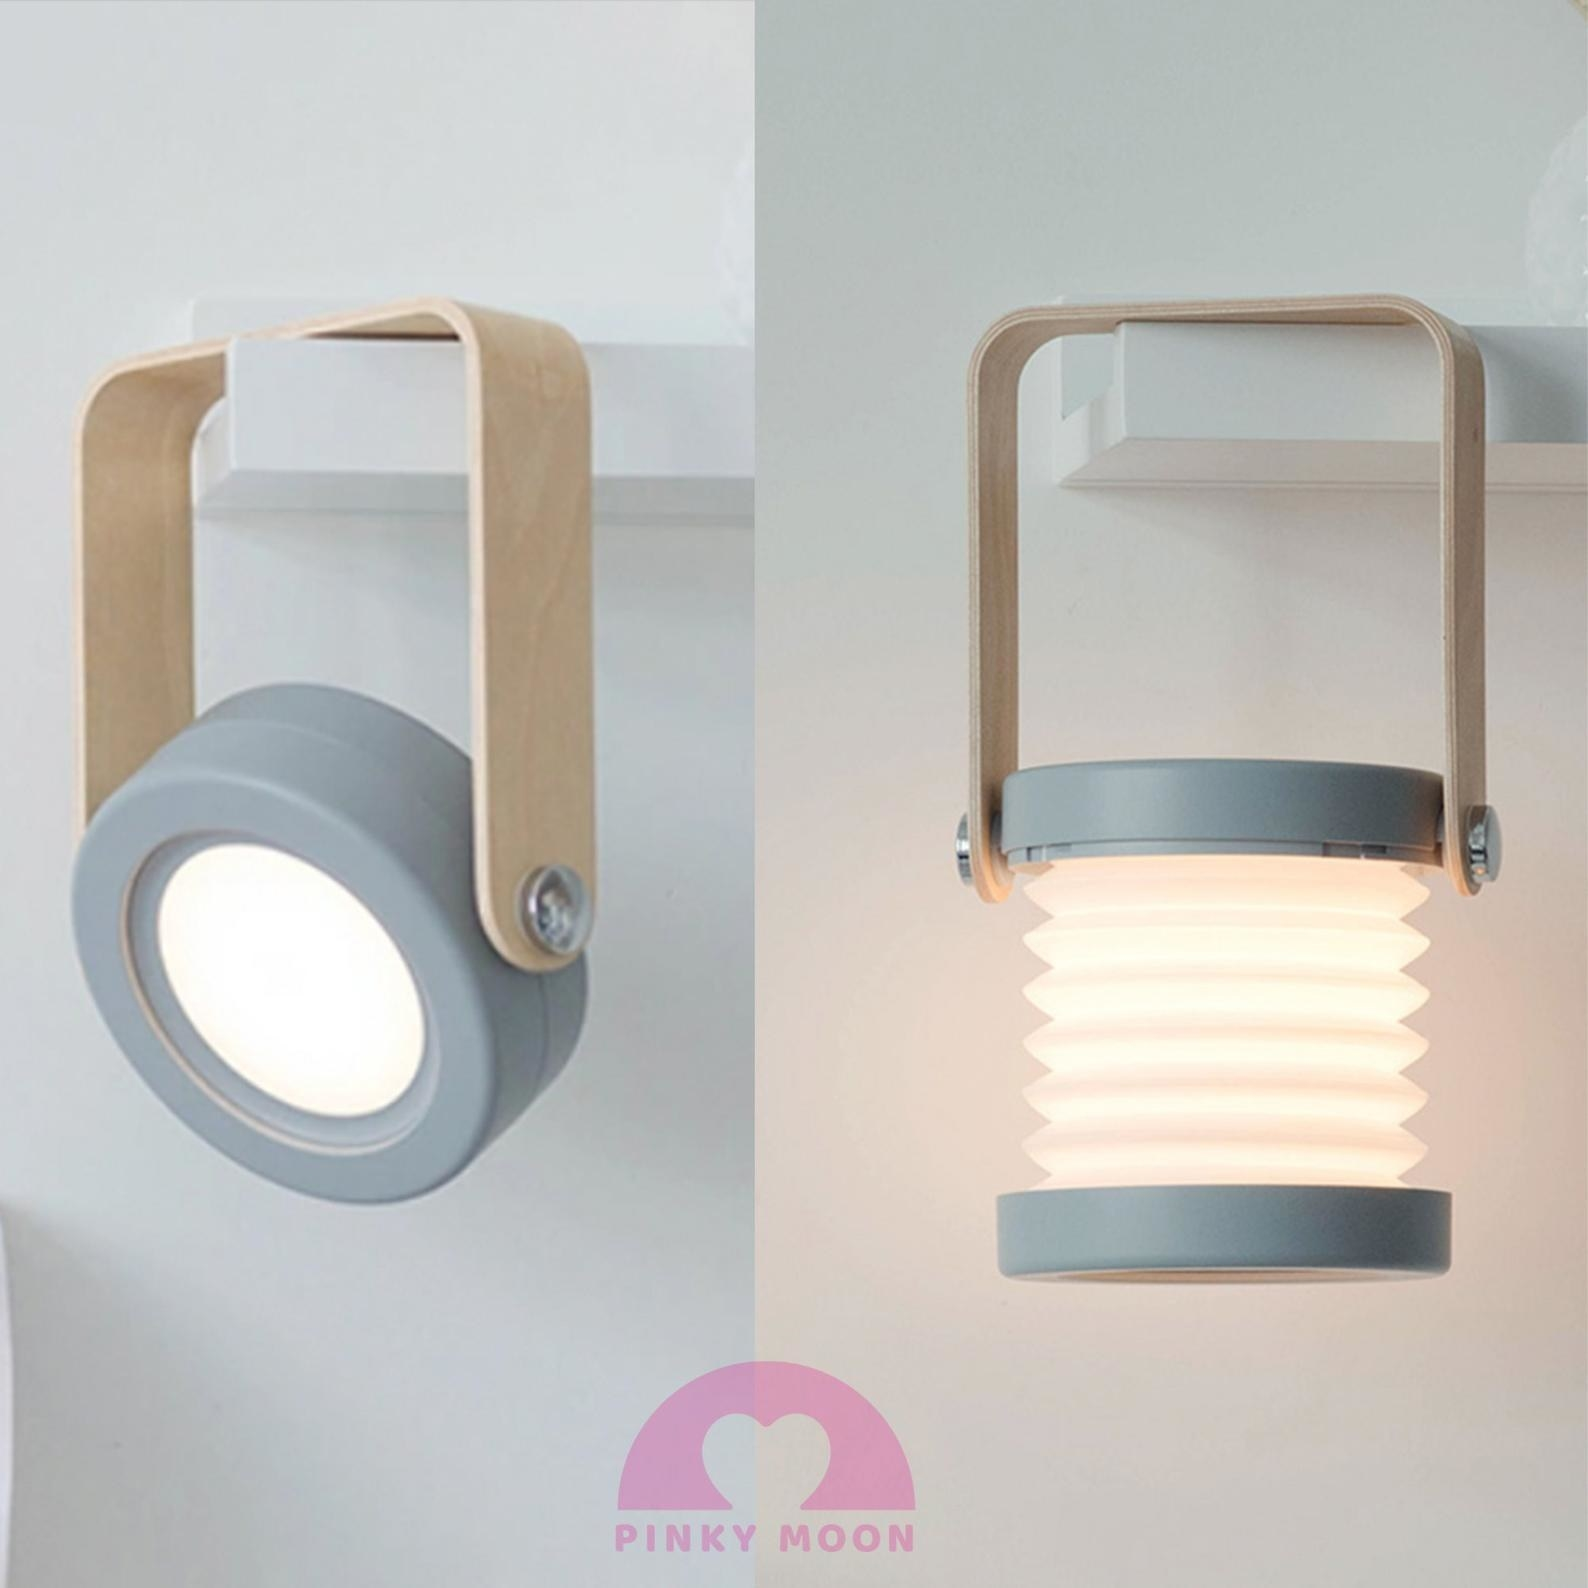 side by side image of the cordless portable lantern hanging from a shelf and fully extended